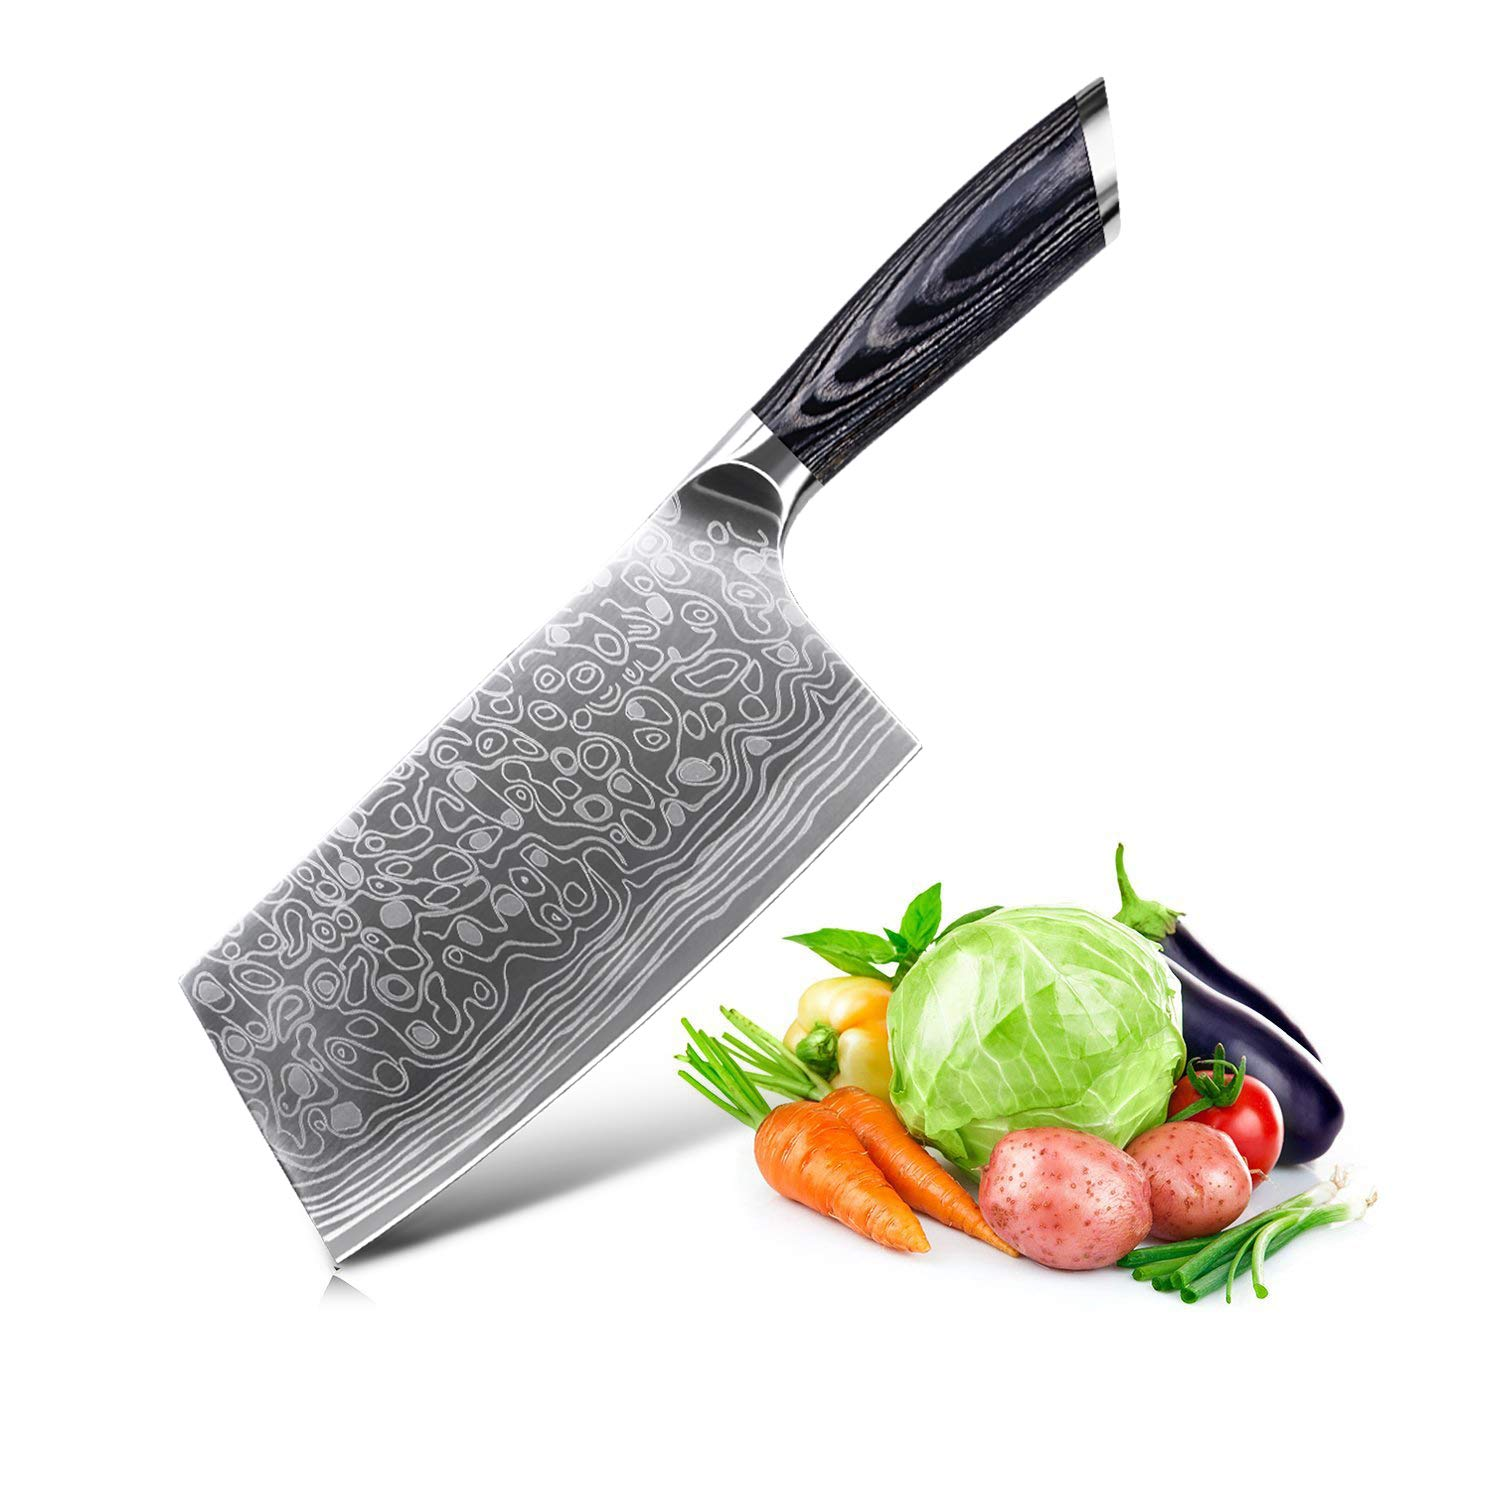 EKUER 7-Inch Chopper Cleaver Butcher Vegetable Knife for Home Kitchen or Restaurant,German High Carbon Stainless Steel with Ergonomic Handle (Style 4) by EKUER (Image #1)